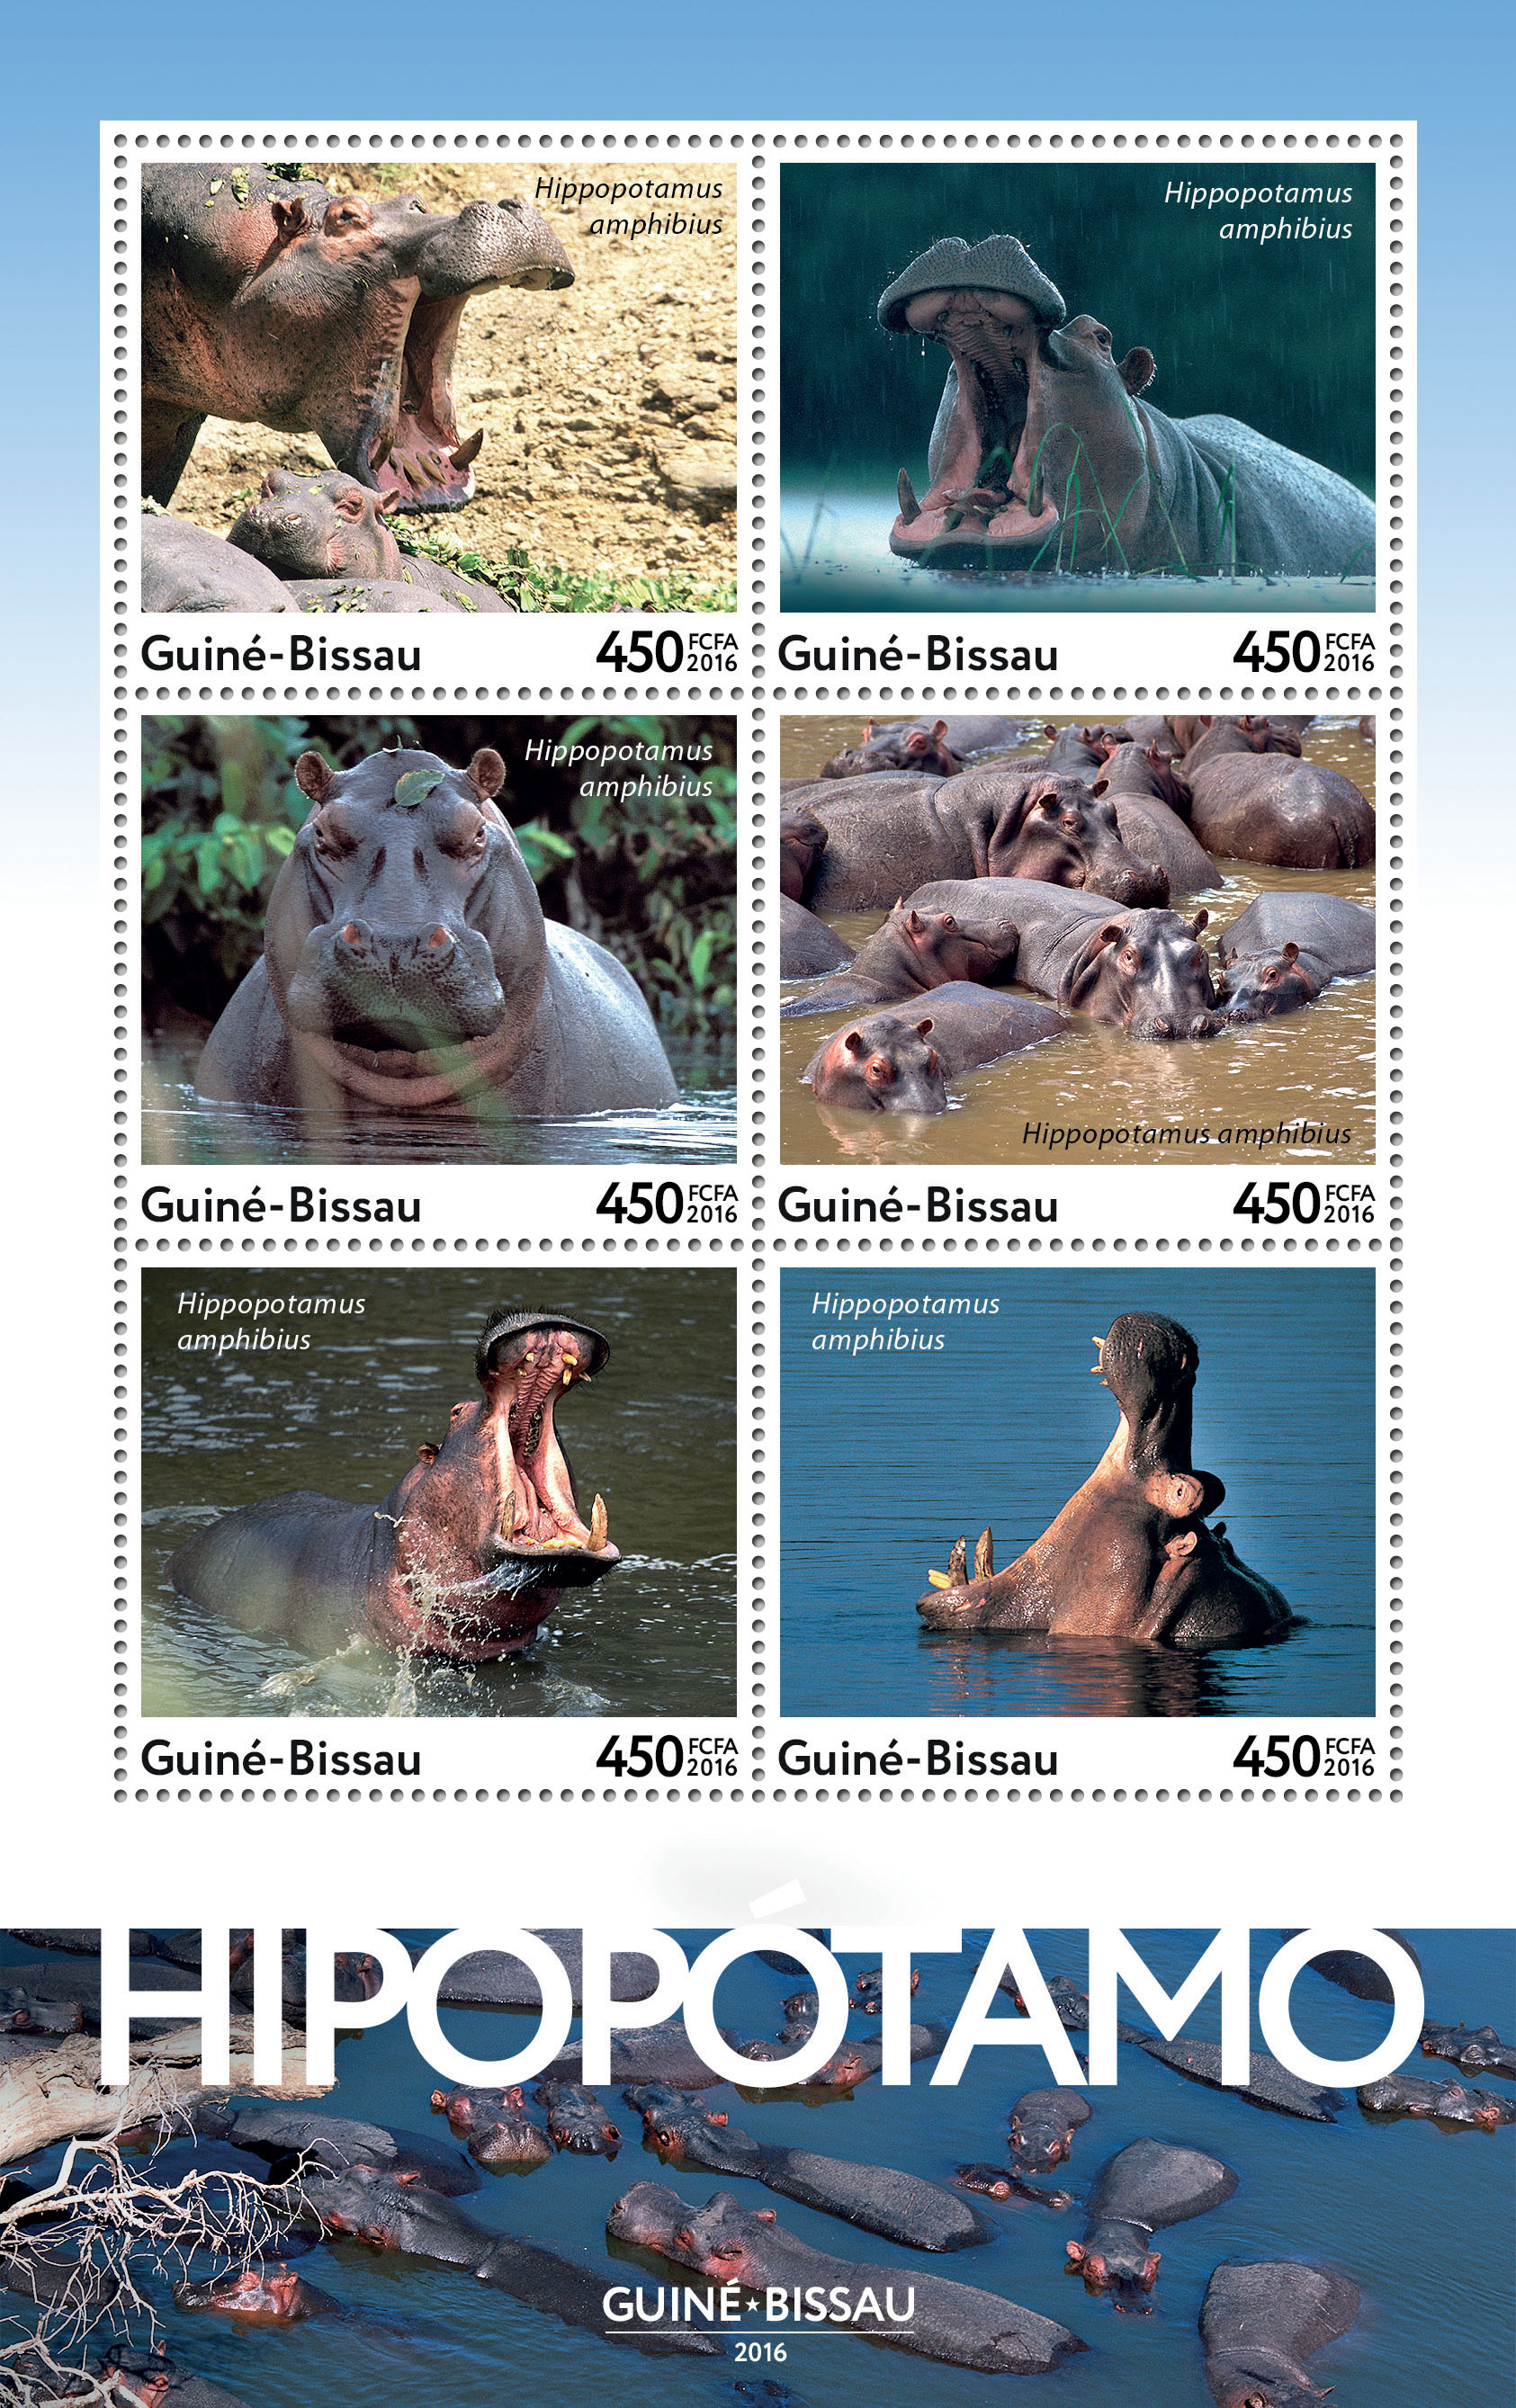 Hippopotamus 6v - Issue of Guinée-Bissau postage stamps